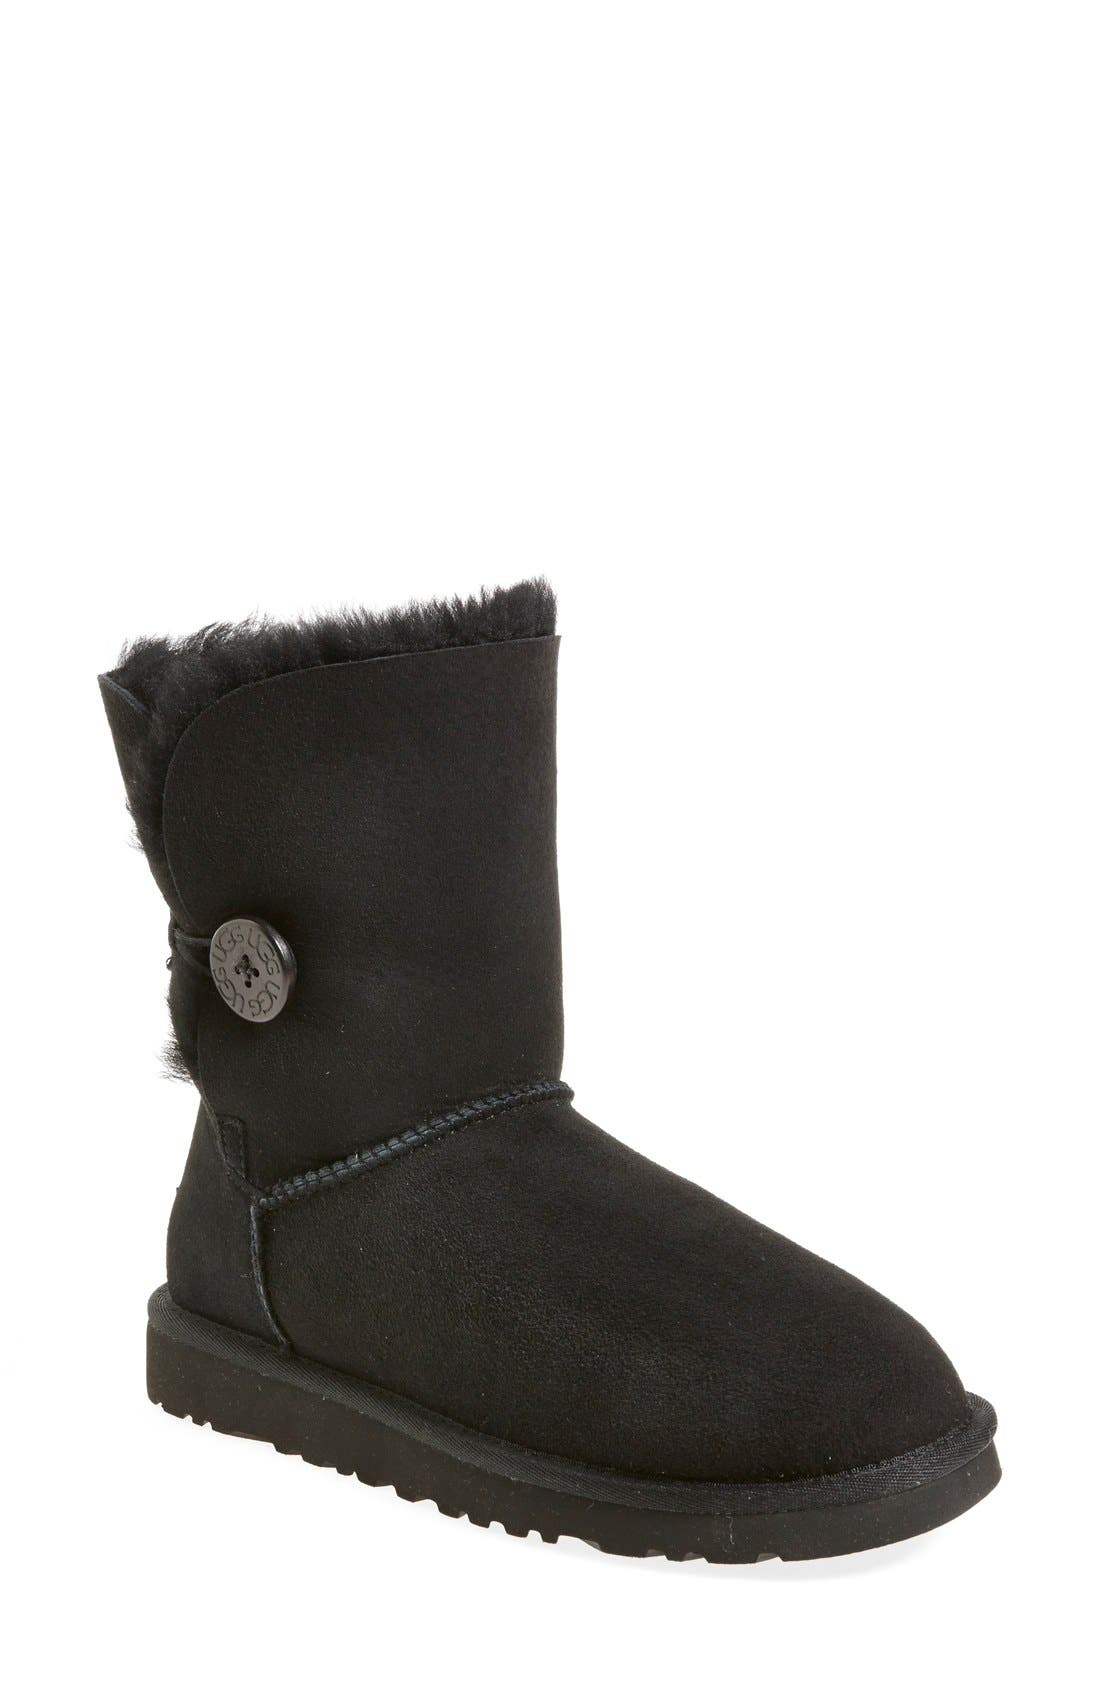 Alternate Image 1 Selected - UGG® 'Bailey Button' Boot (Women)